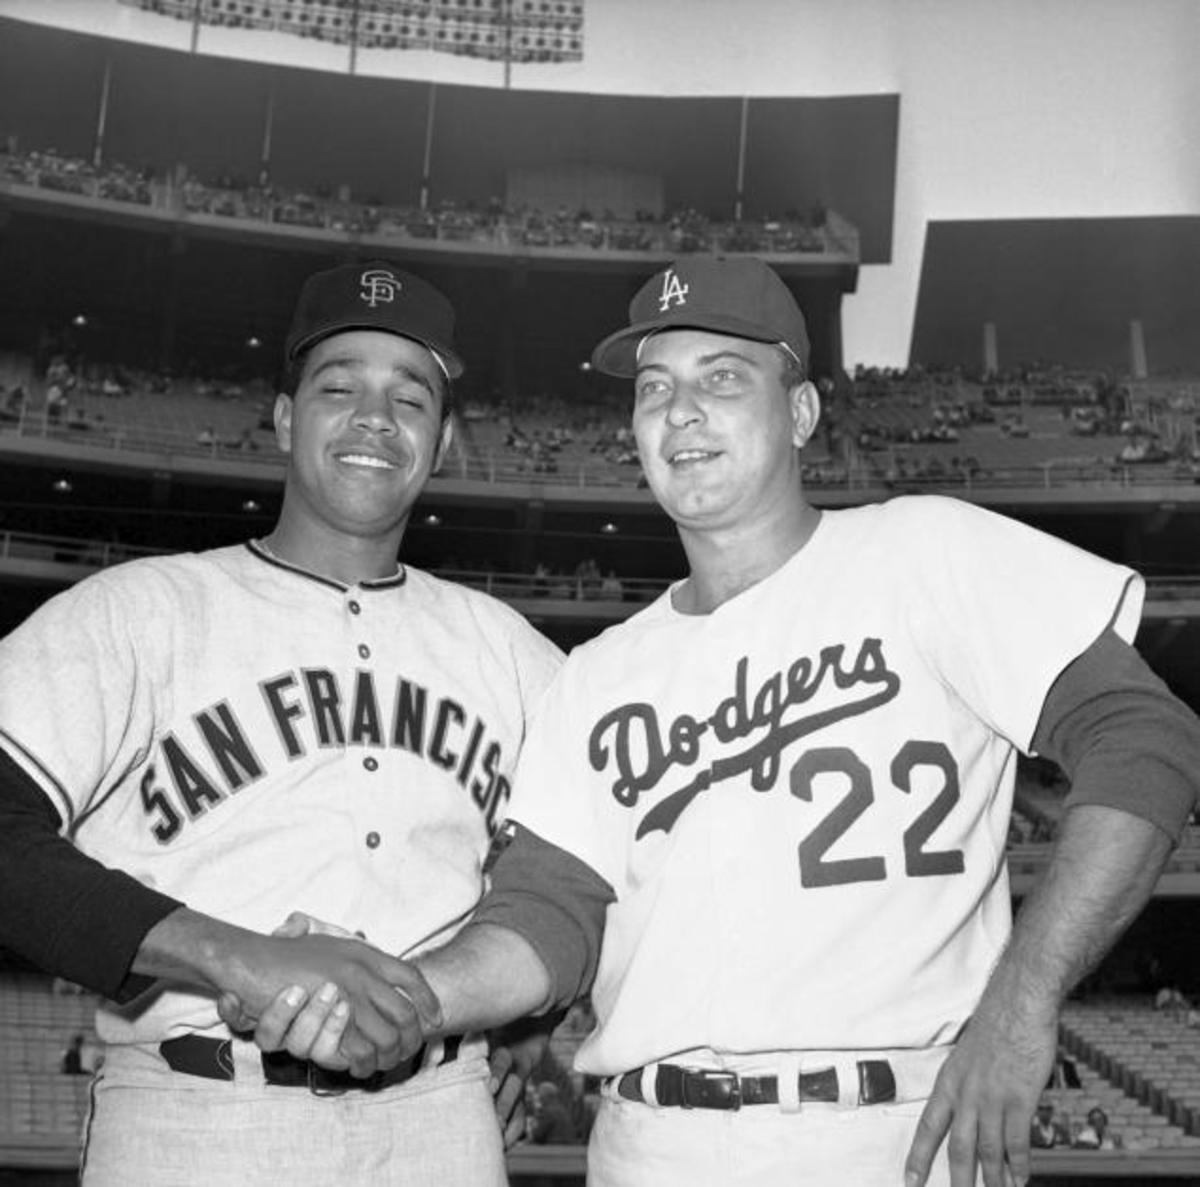 Marichal and Podres before Game 3.